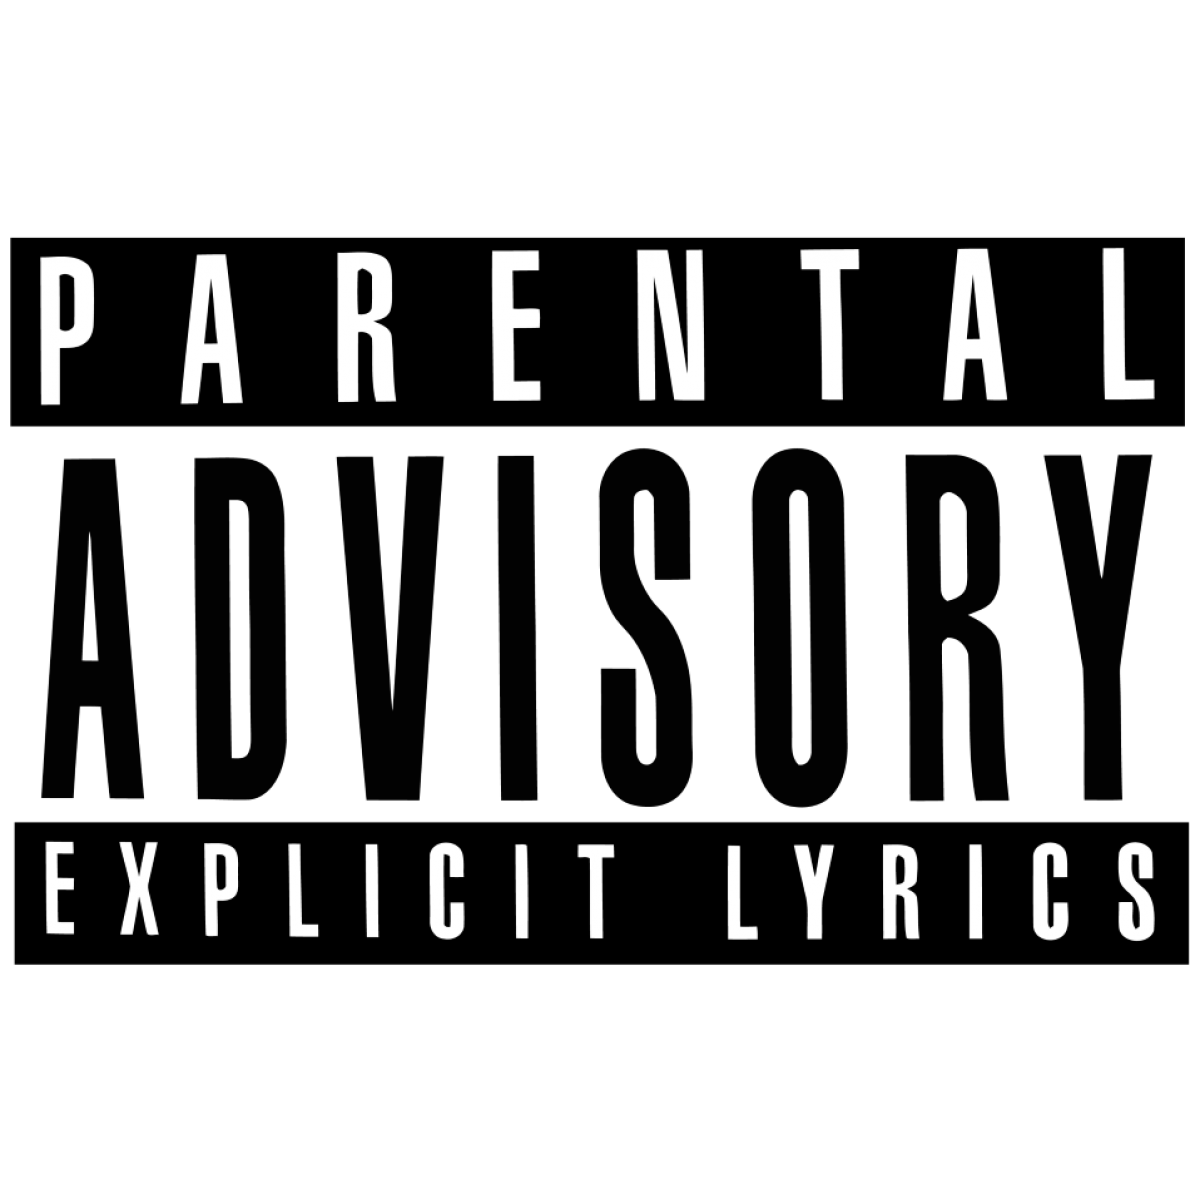 the labeling of music albums for parents to censor content for their children